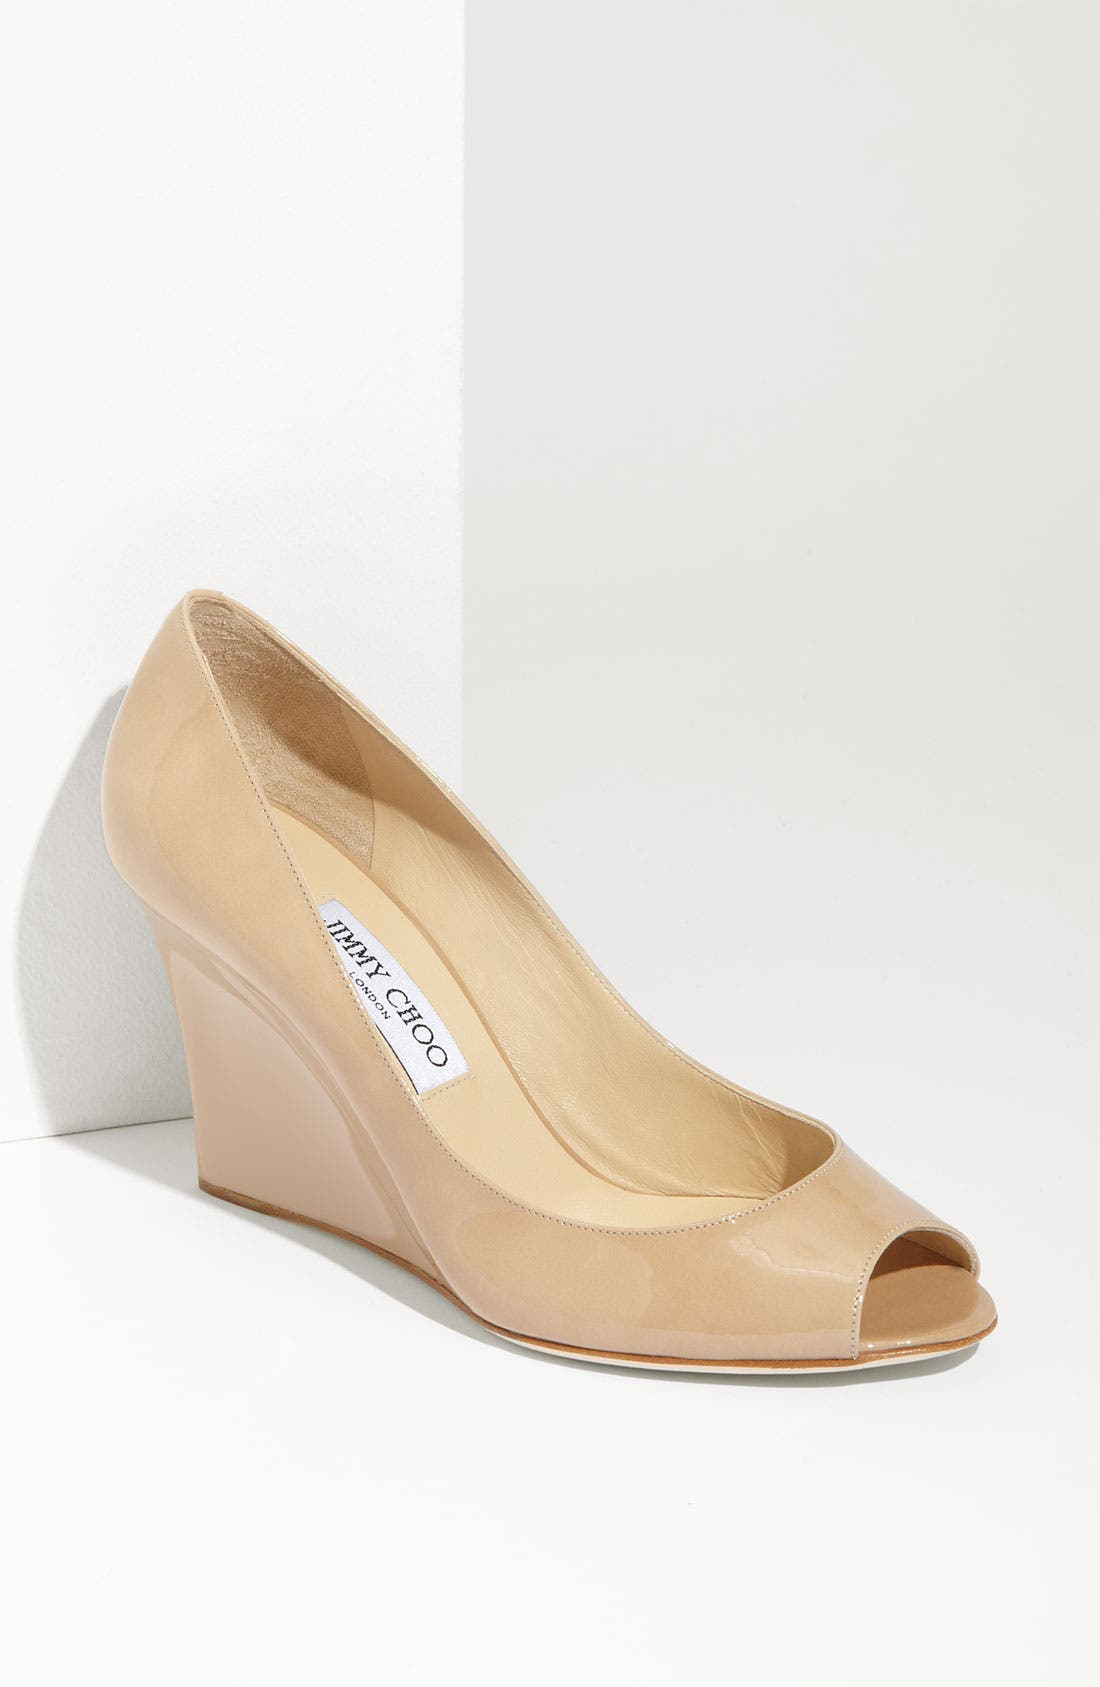 Main Image - Jimmy Choo 'Baxen' Peep Toe Wedge